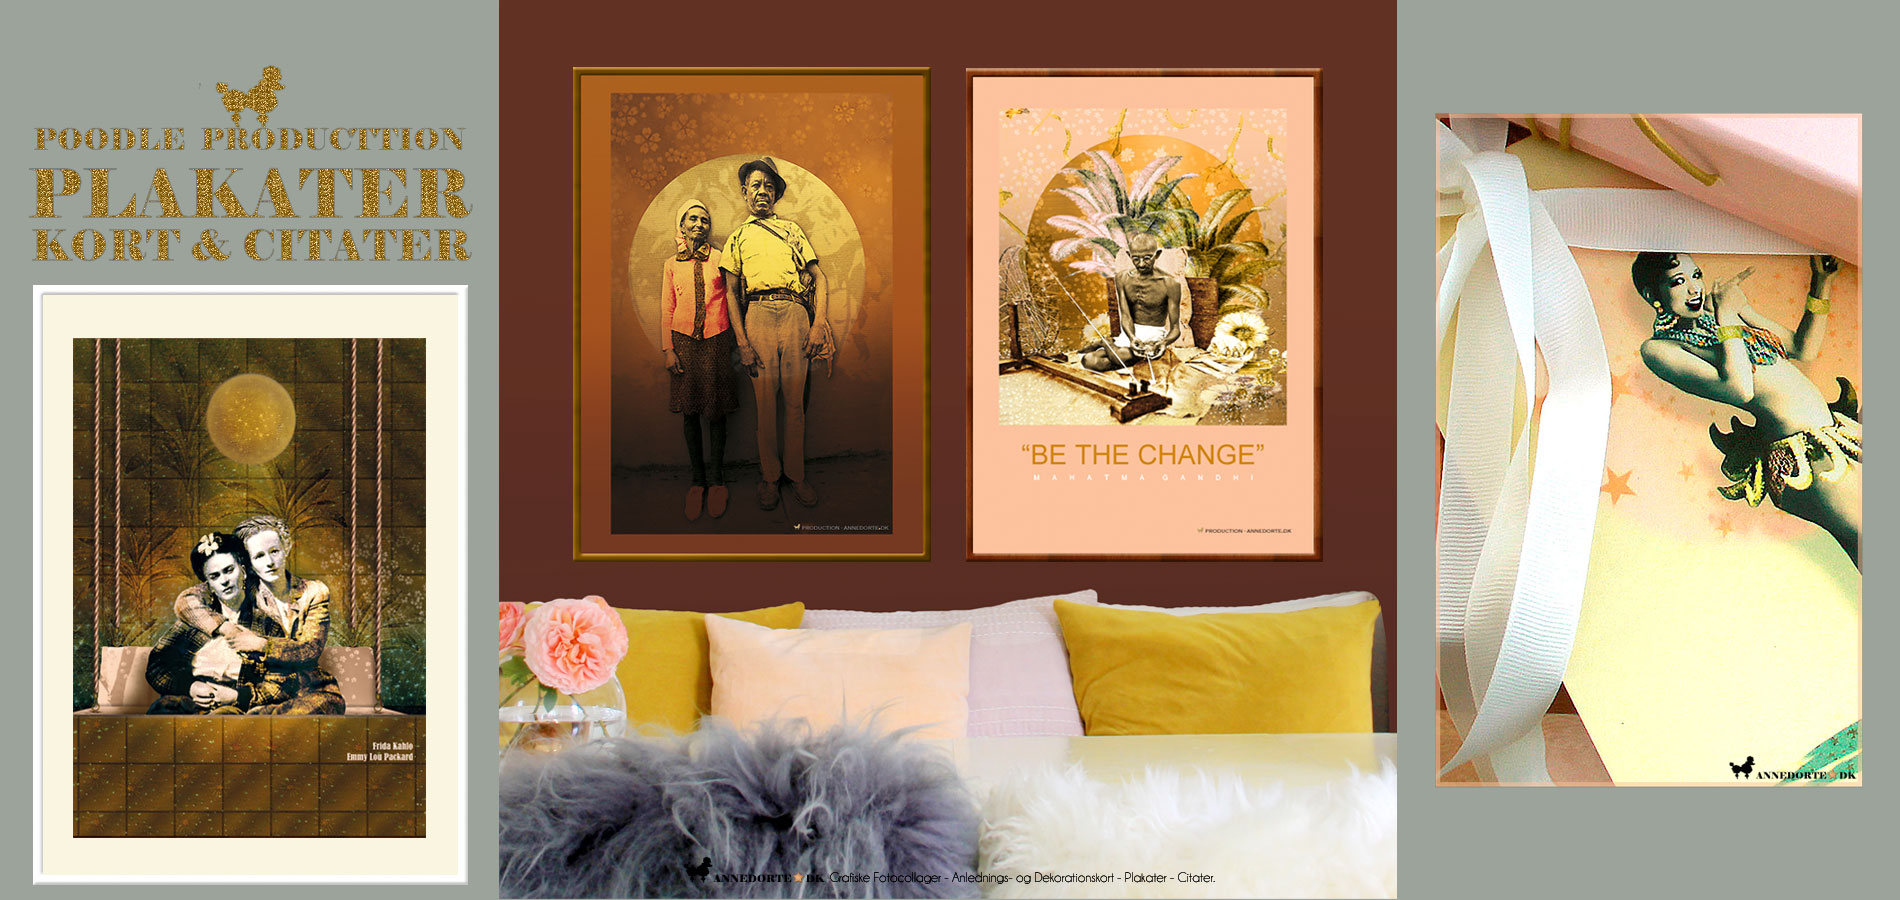 """Plakat Mahatma Gandhi """"Be the change you wish to see in the world"""" Frida Kahlo &Emmy Lou Packard & Josephine Baker"""